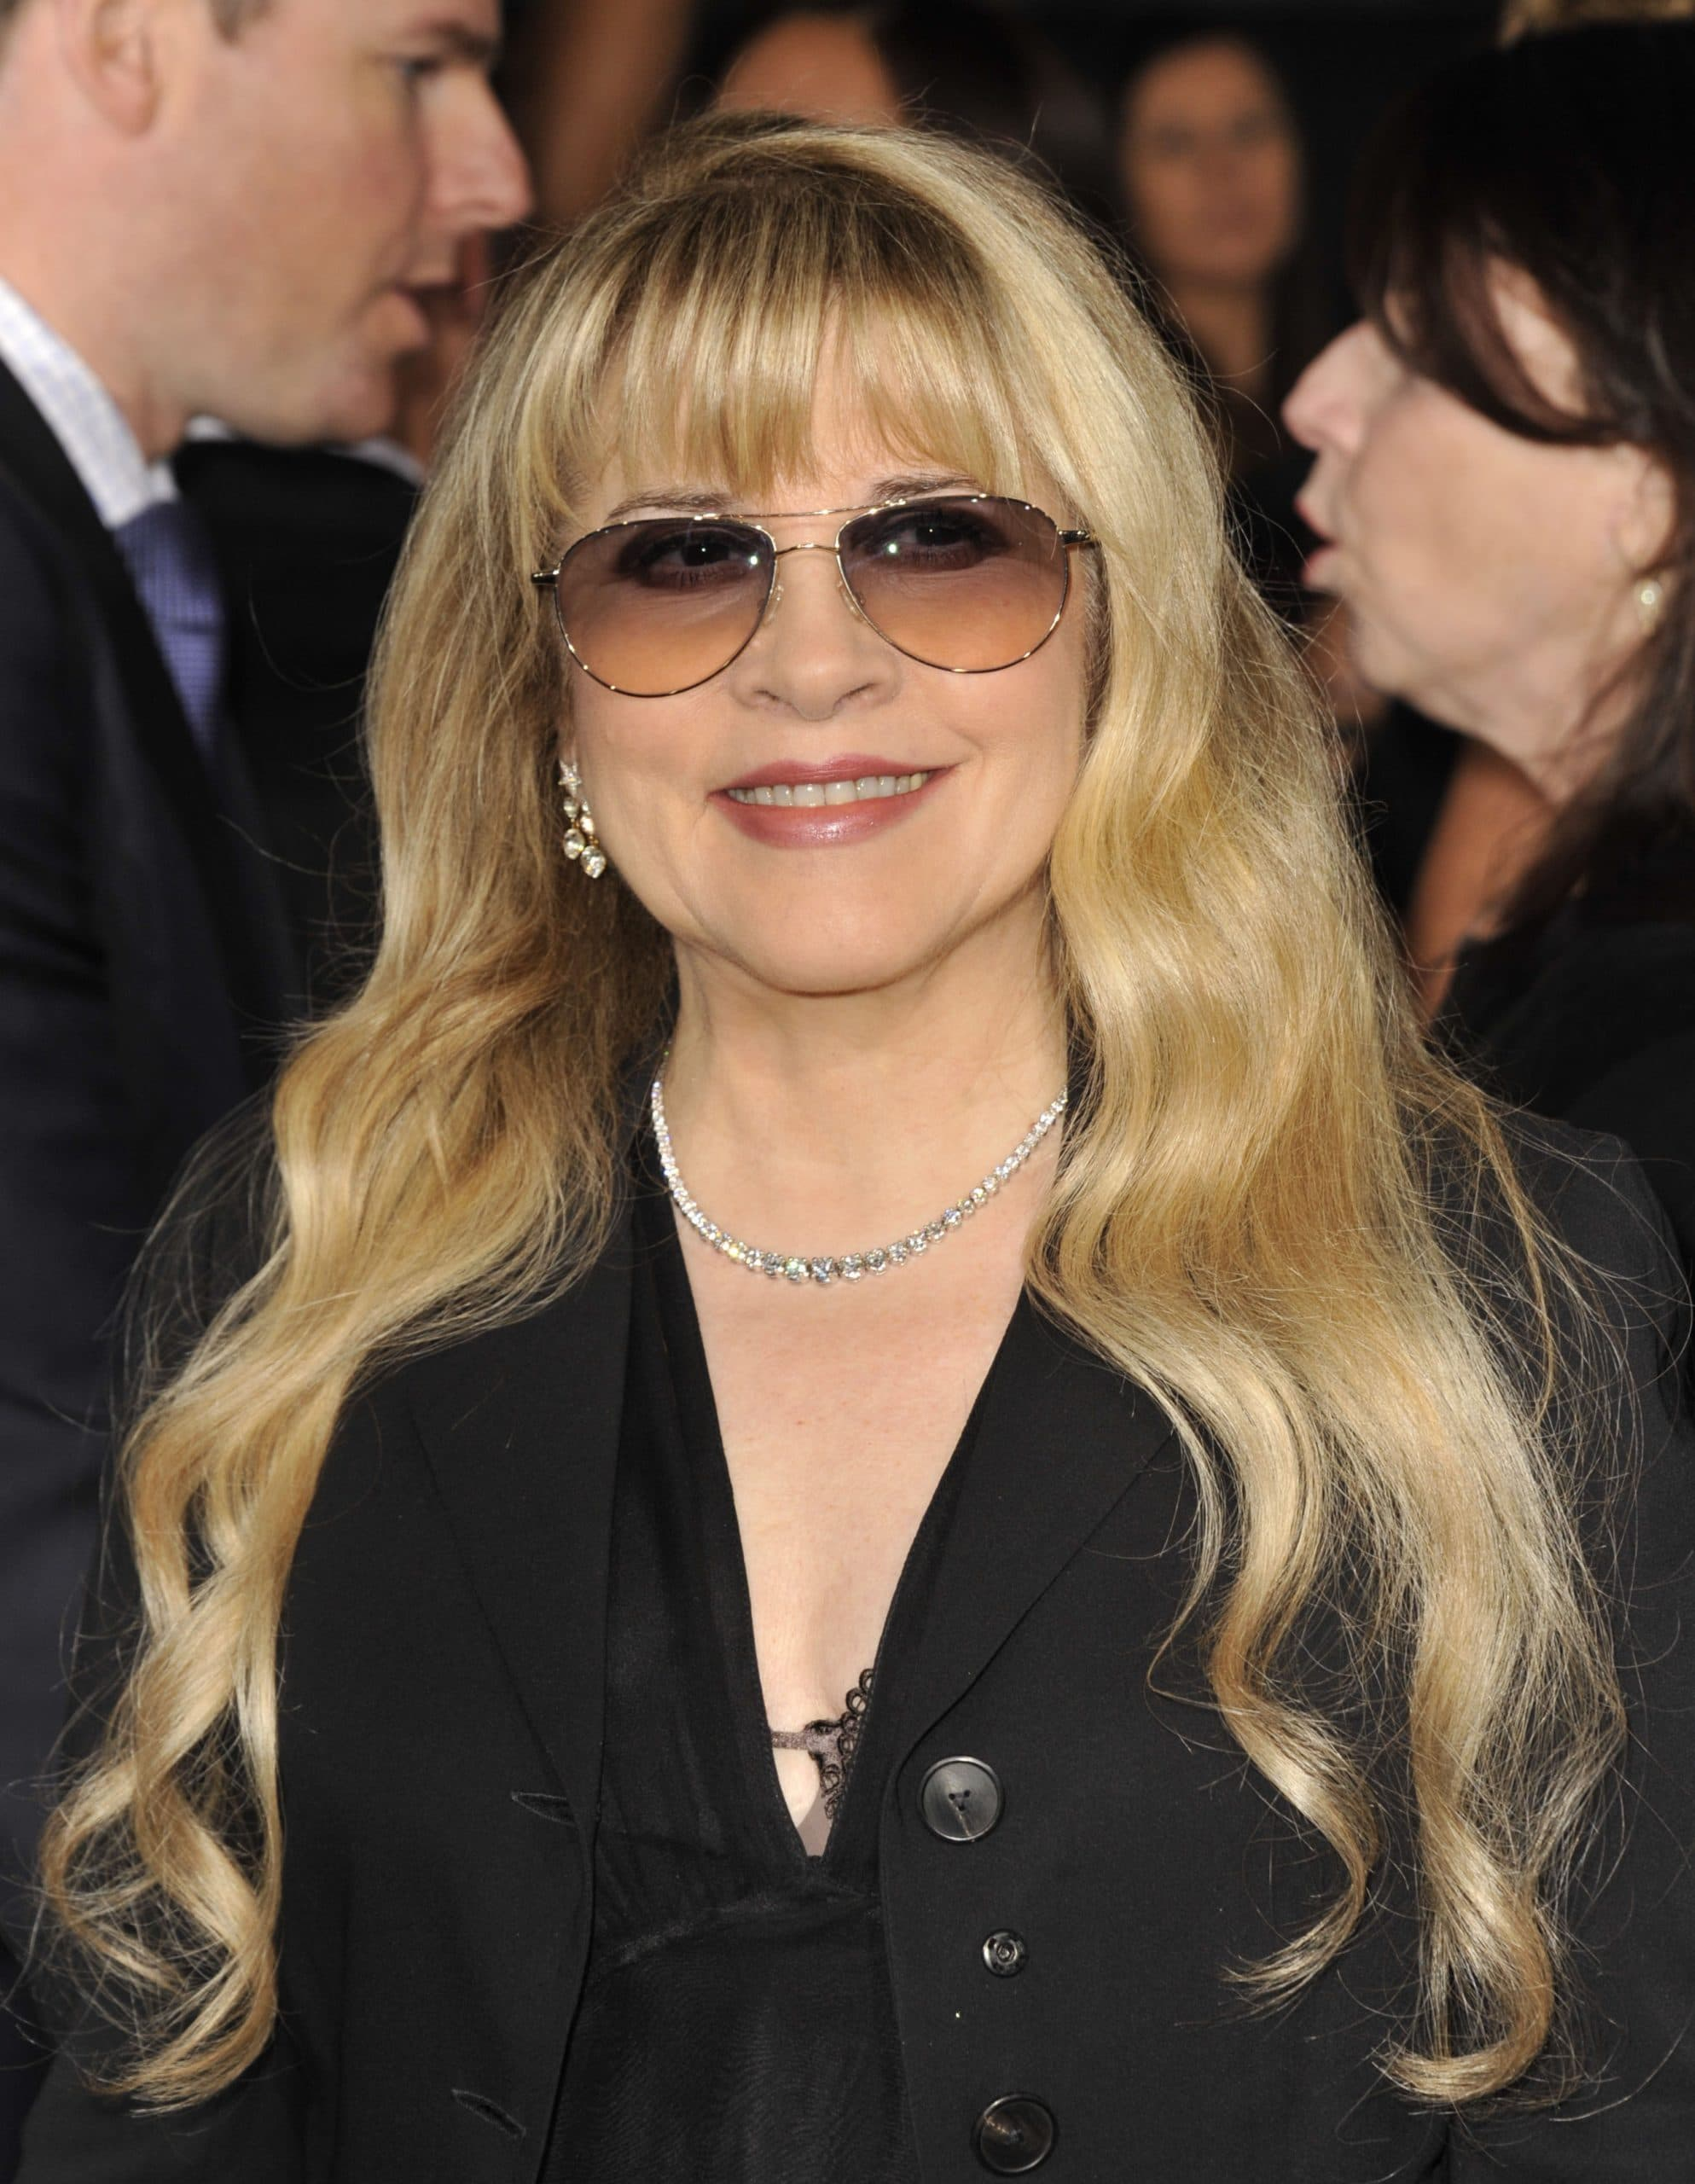 Stevie Nicks Has This One Regret About Fleetwood Mac Founder Peter Green